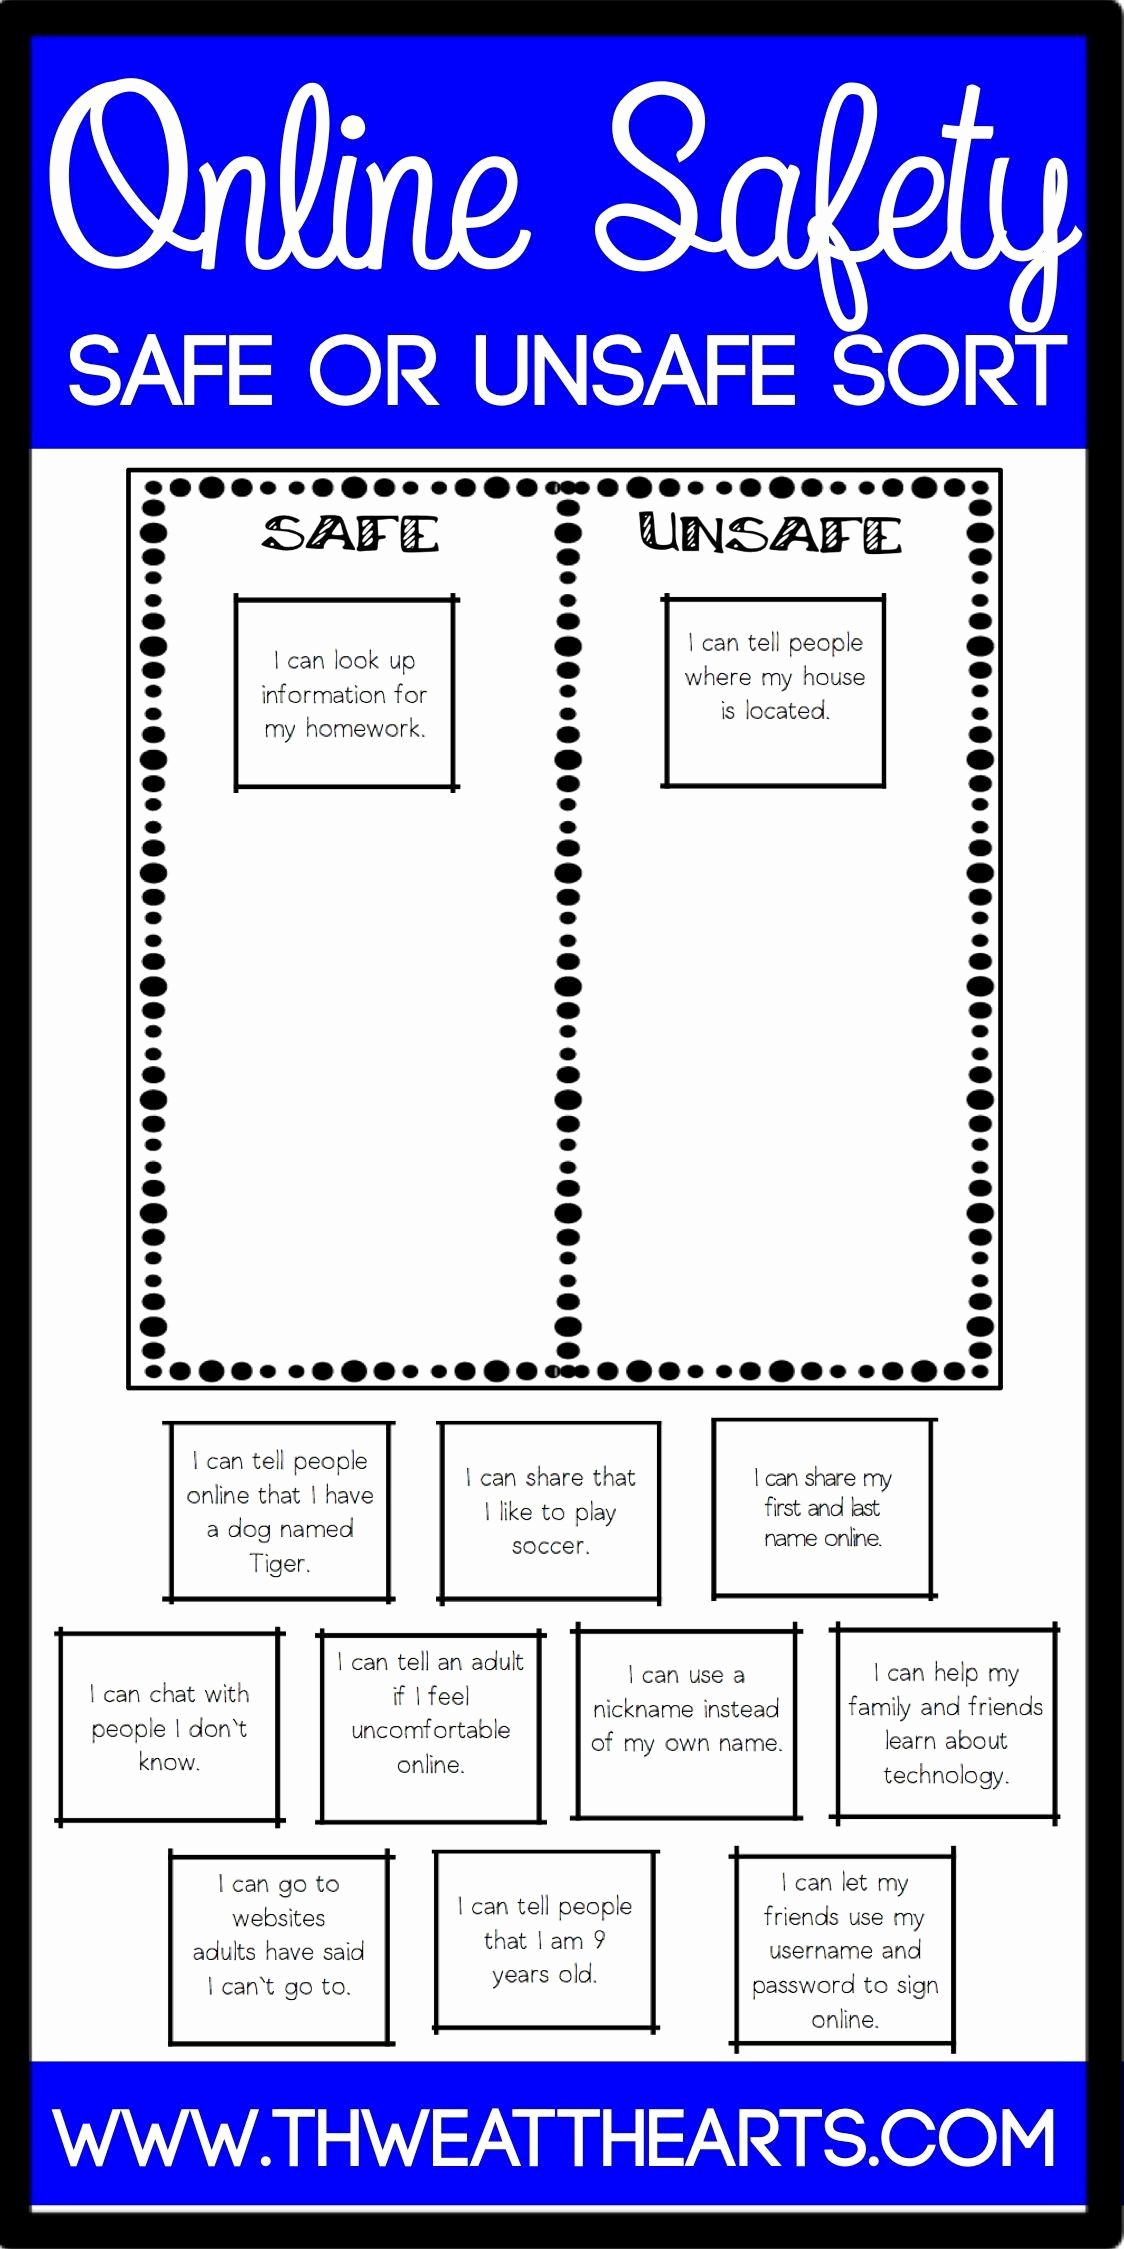 Internet Safety Worksheets Printable Unique Pin On Printable Worksheets for Preschoolers